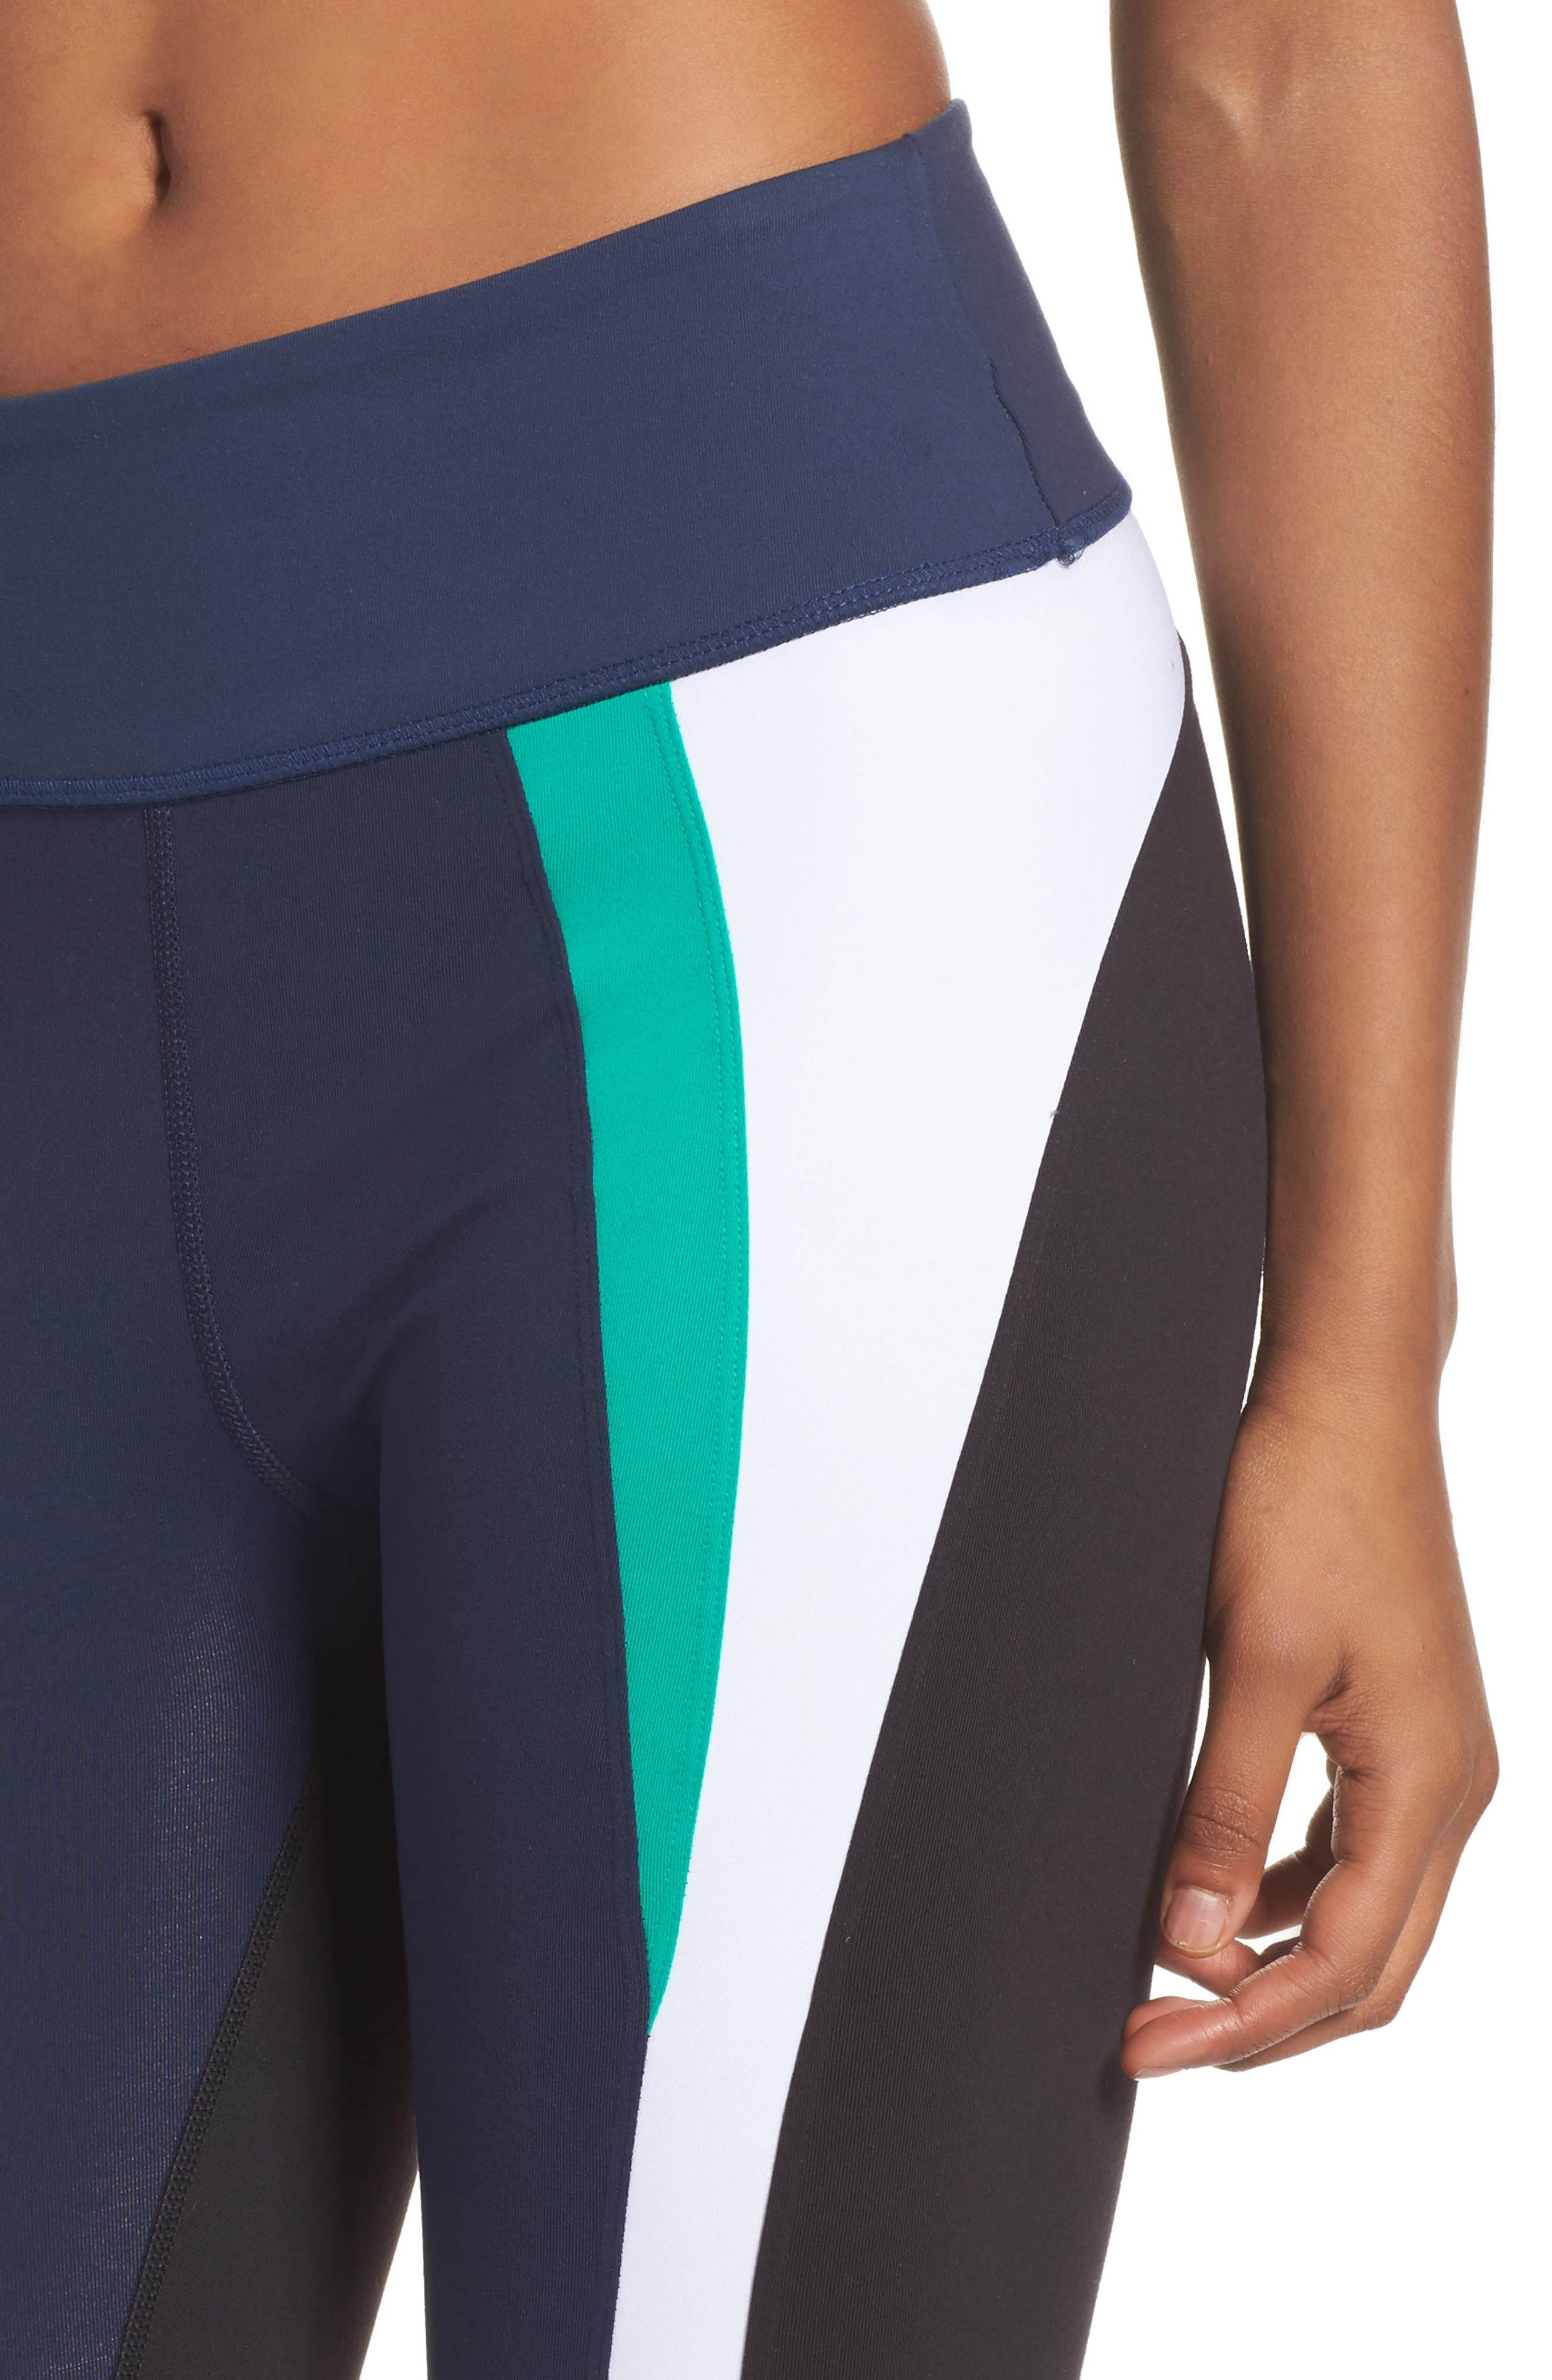 Force Ankle Tights,                             Alternate thumbnail 4, color,                             Navy/ Kelly/ White/ Black